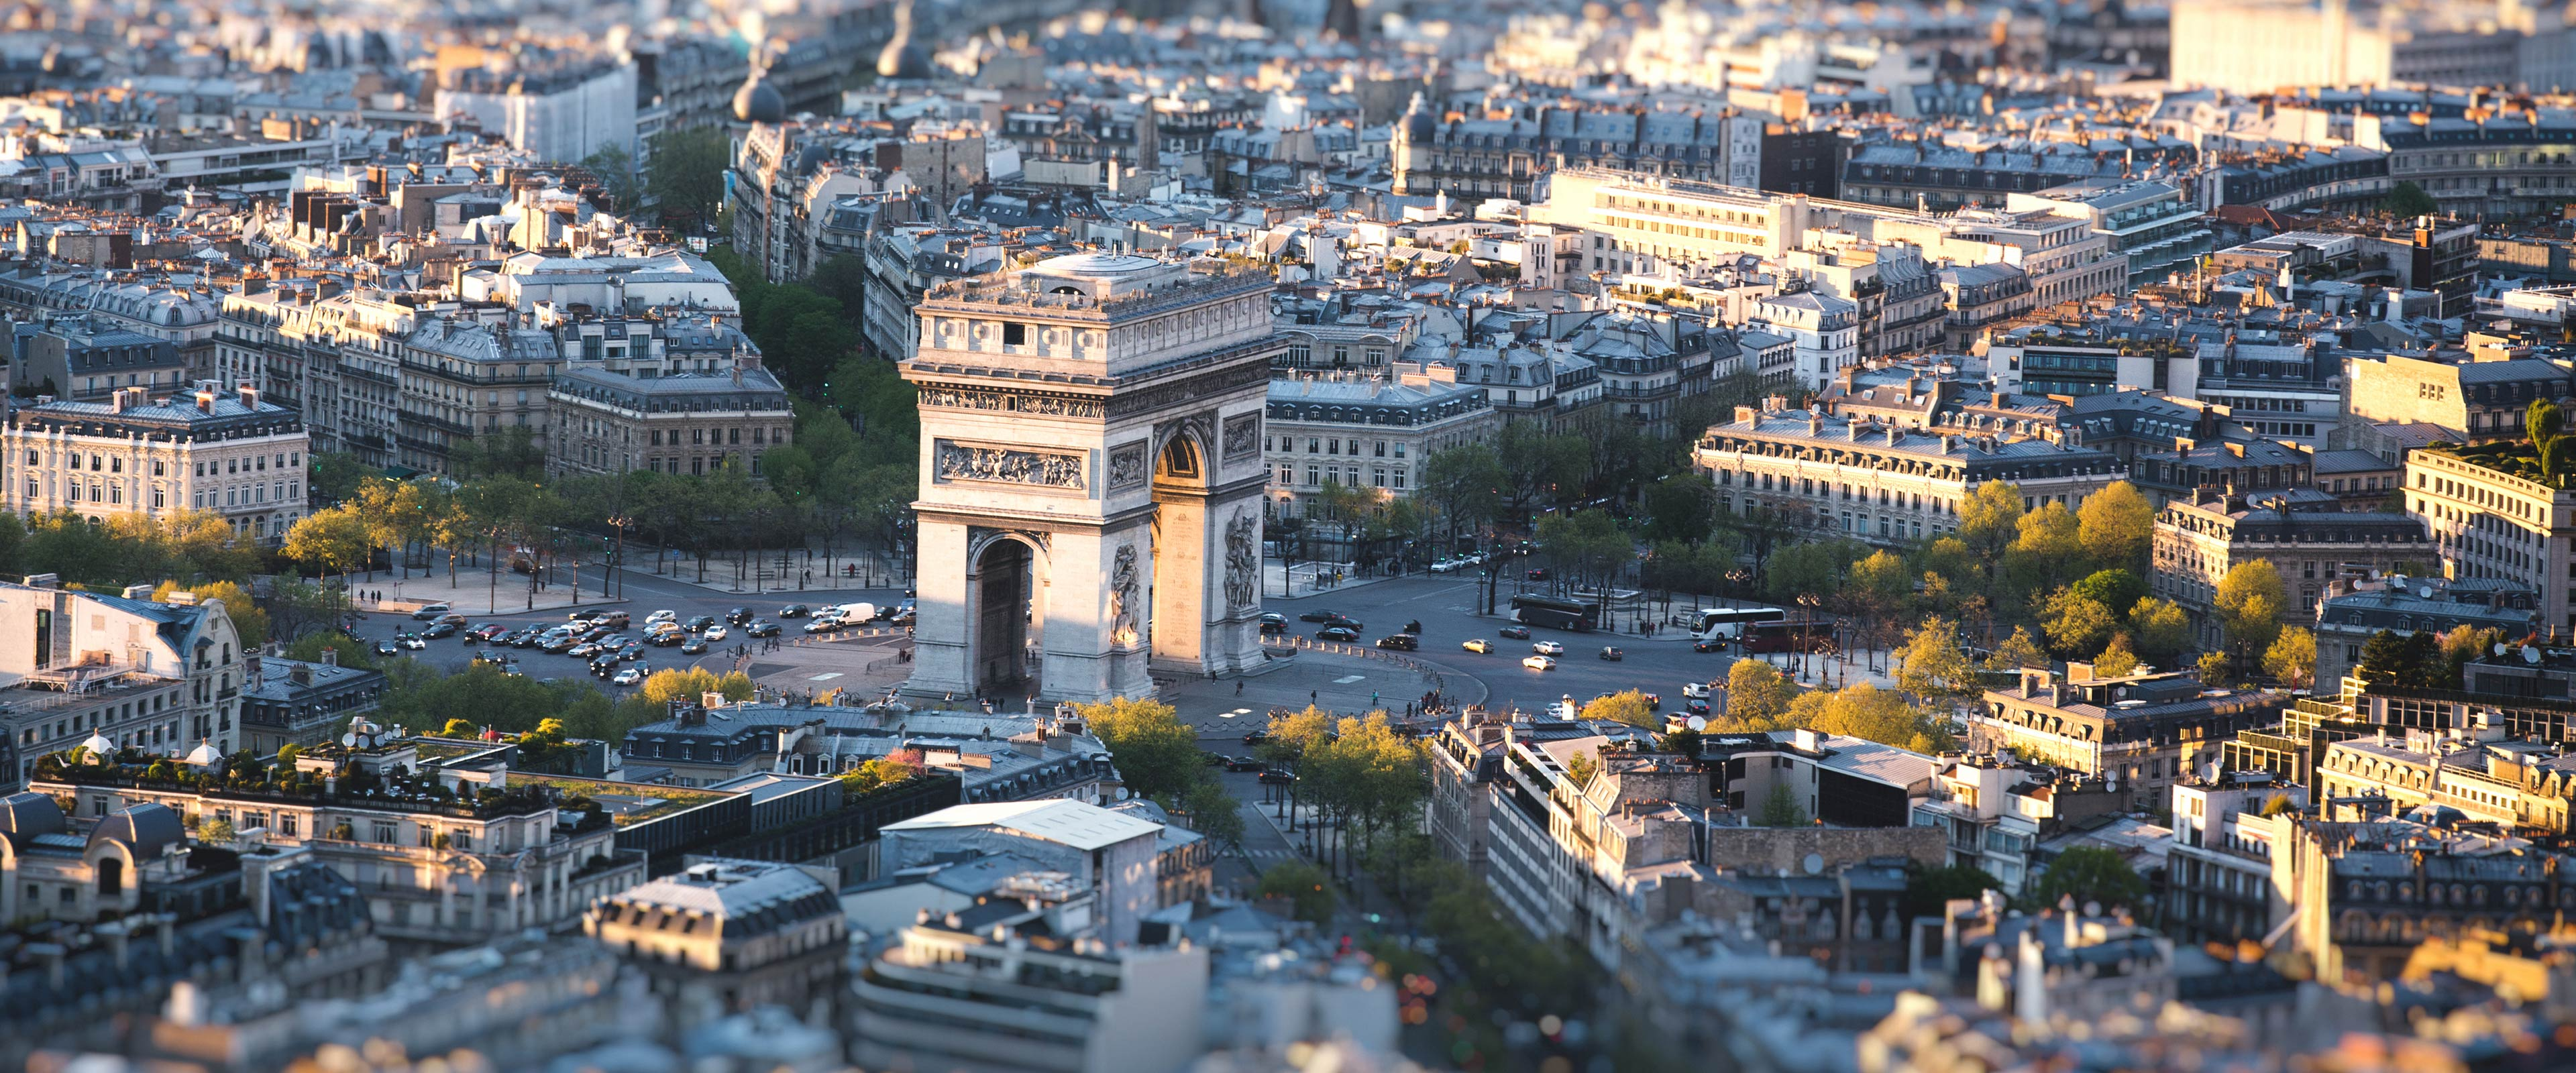 Paris 2024: economically and socially responsible Games